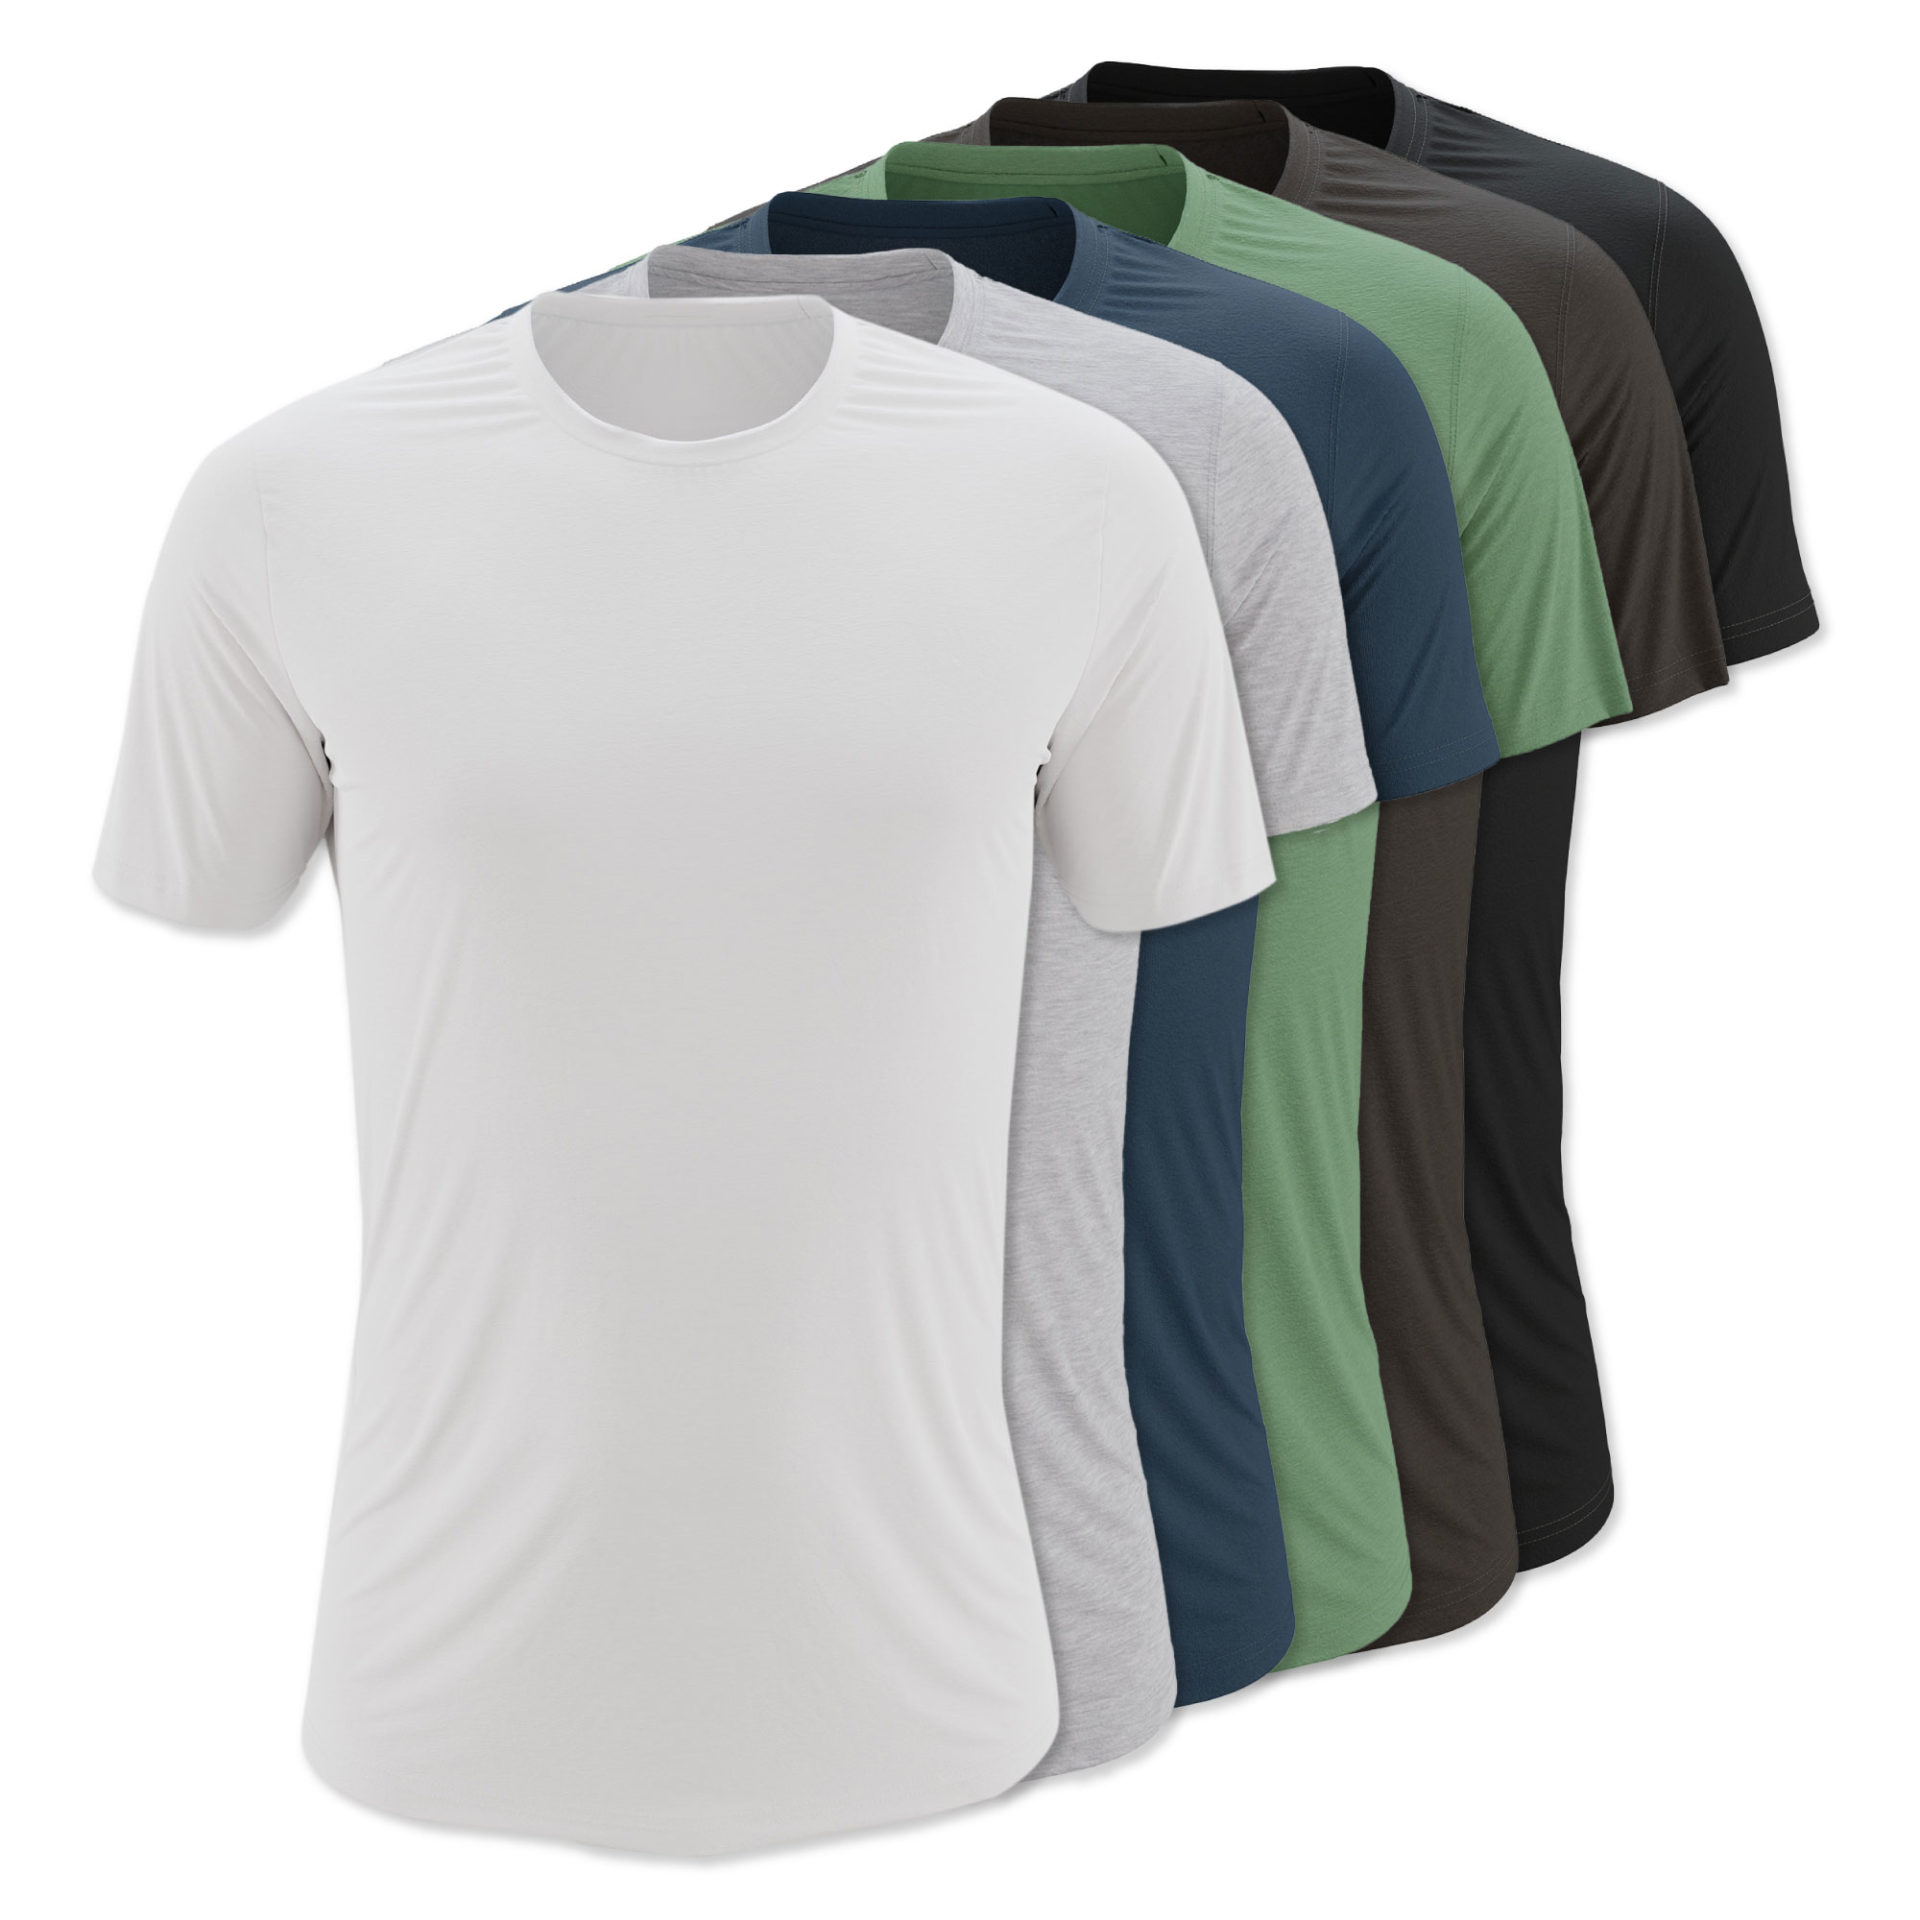 StringKing Apparel Custom Fit Tee Shirts Color Options